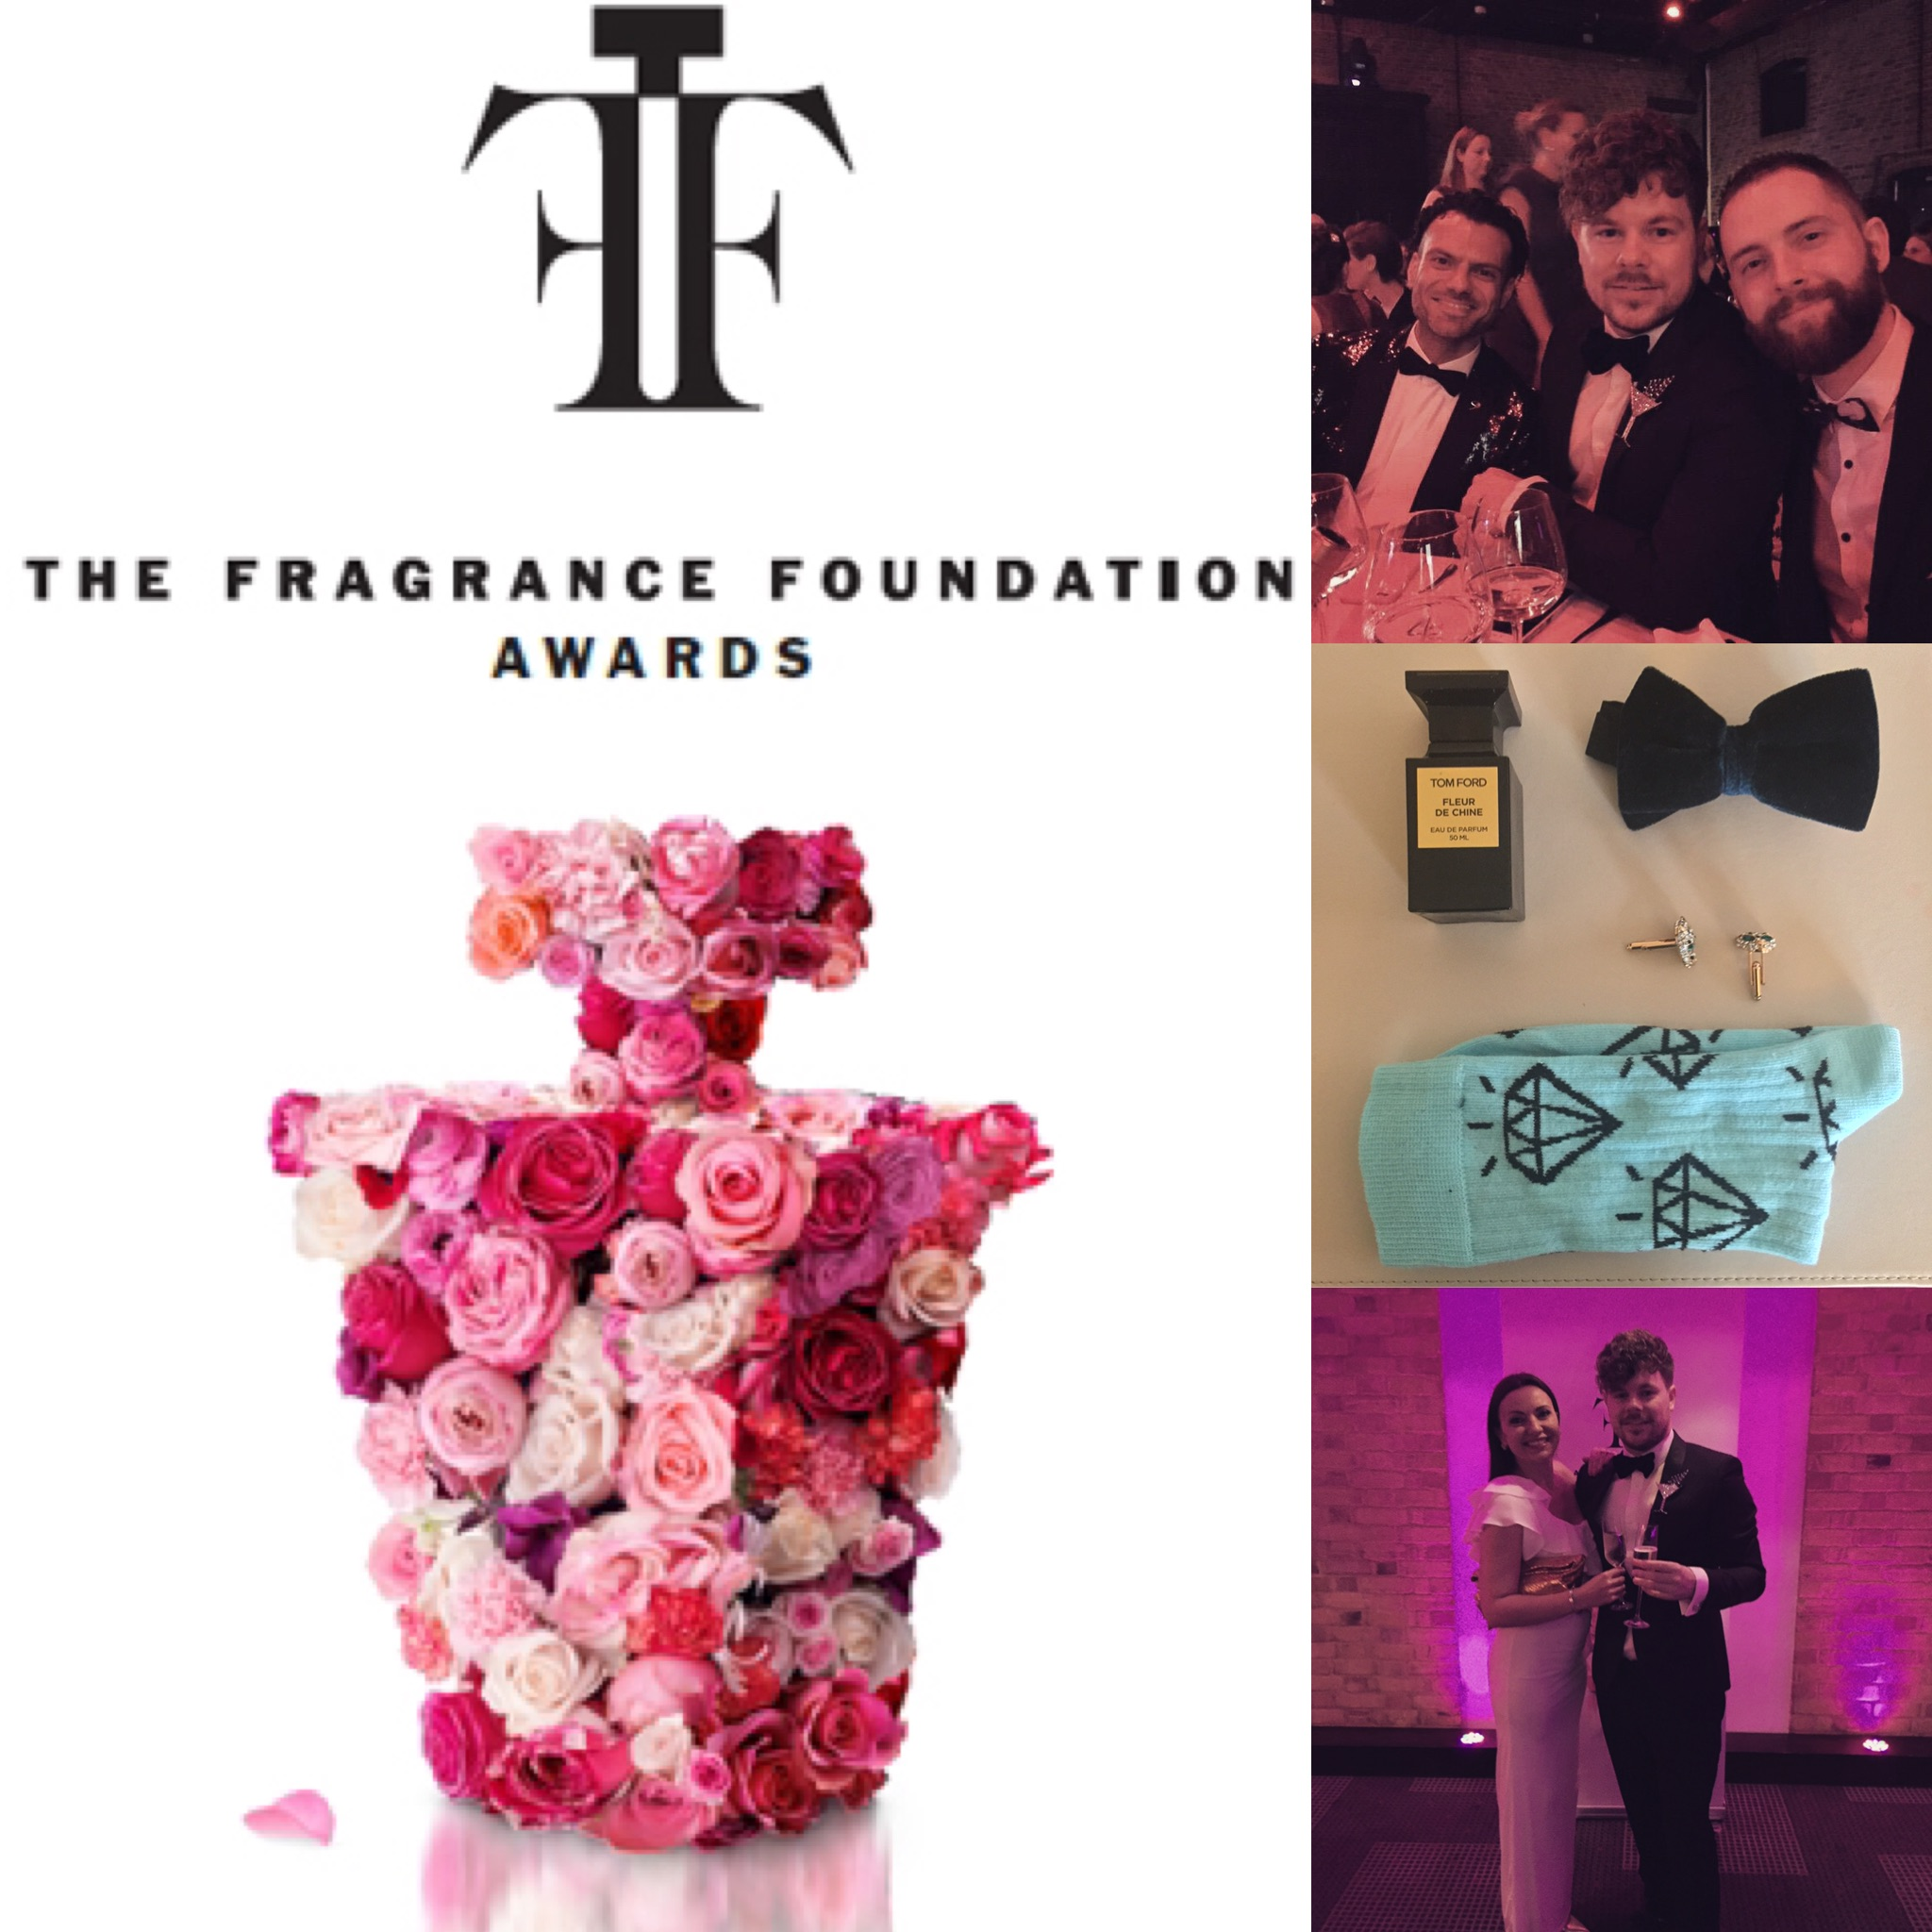 Fragrance Foundation Awards: 2014 Winners